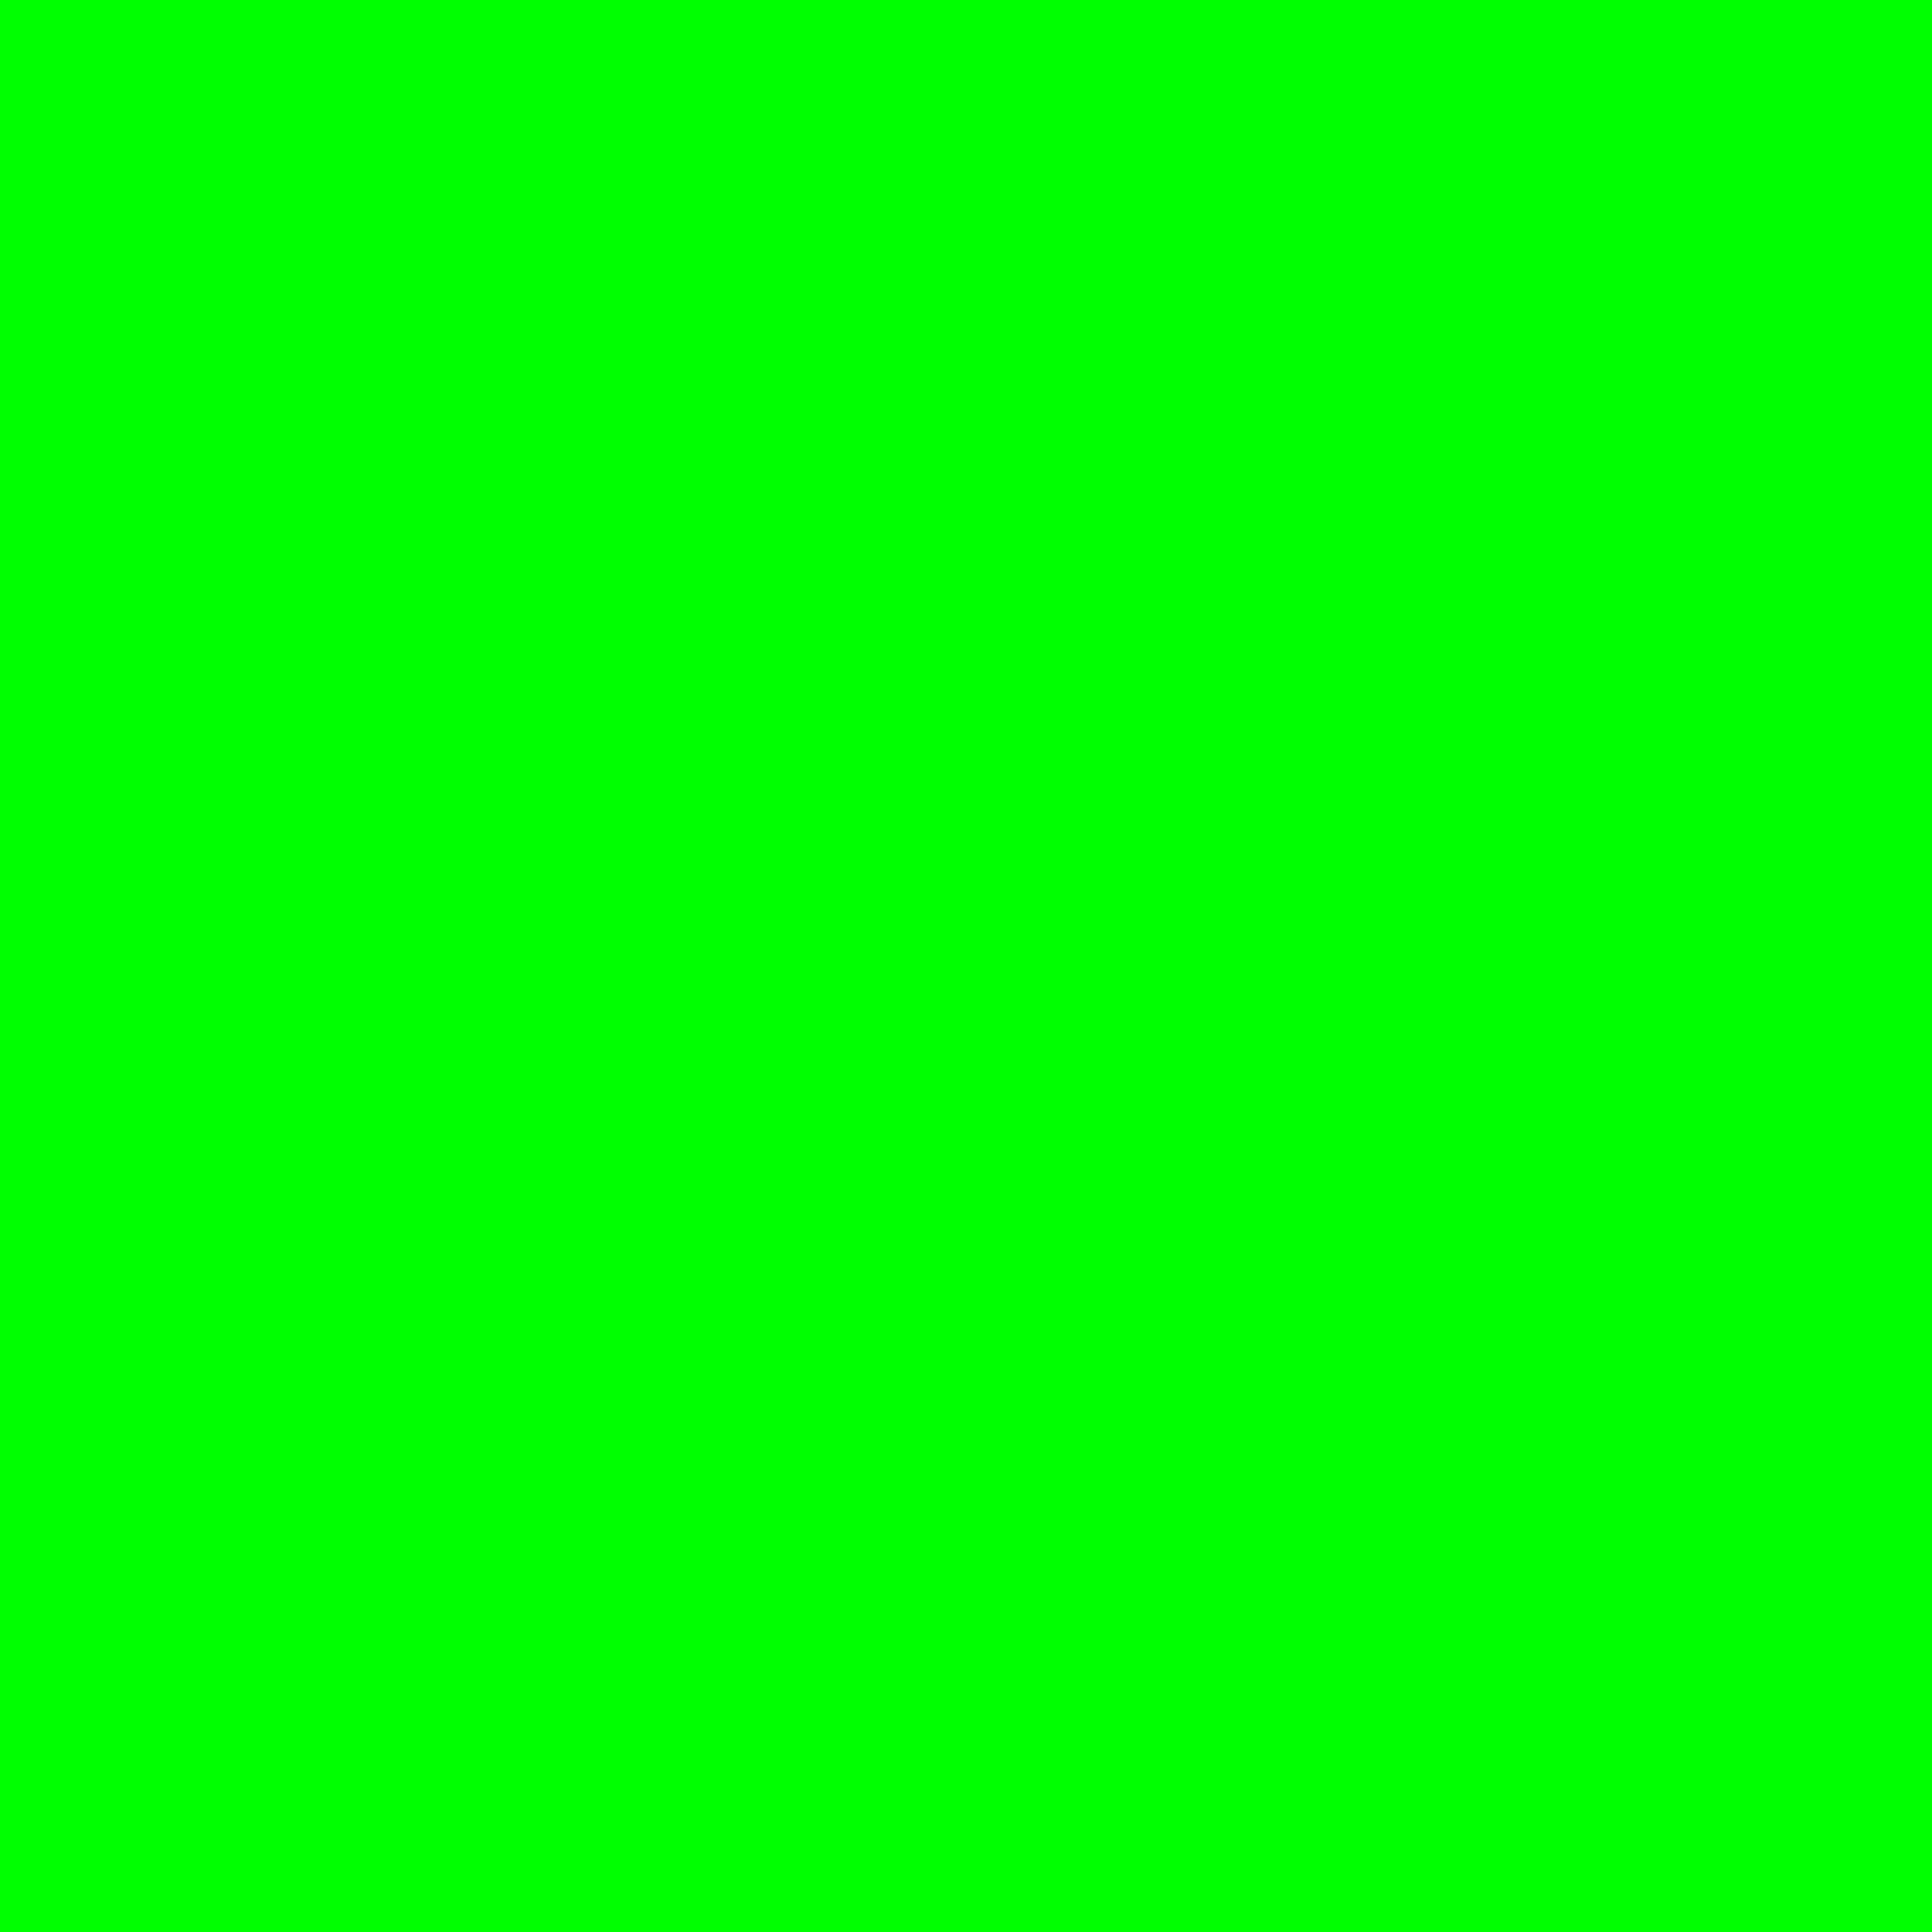 2732x2732 Lime Web Green Solid Color Background